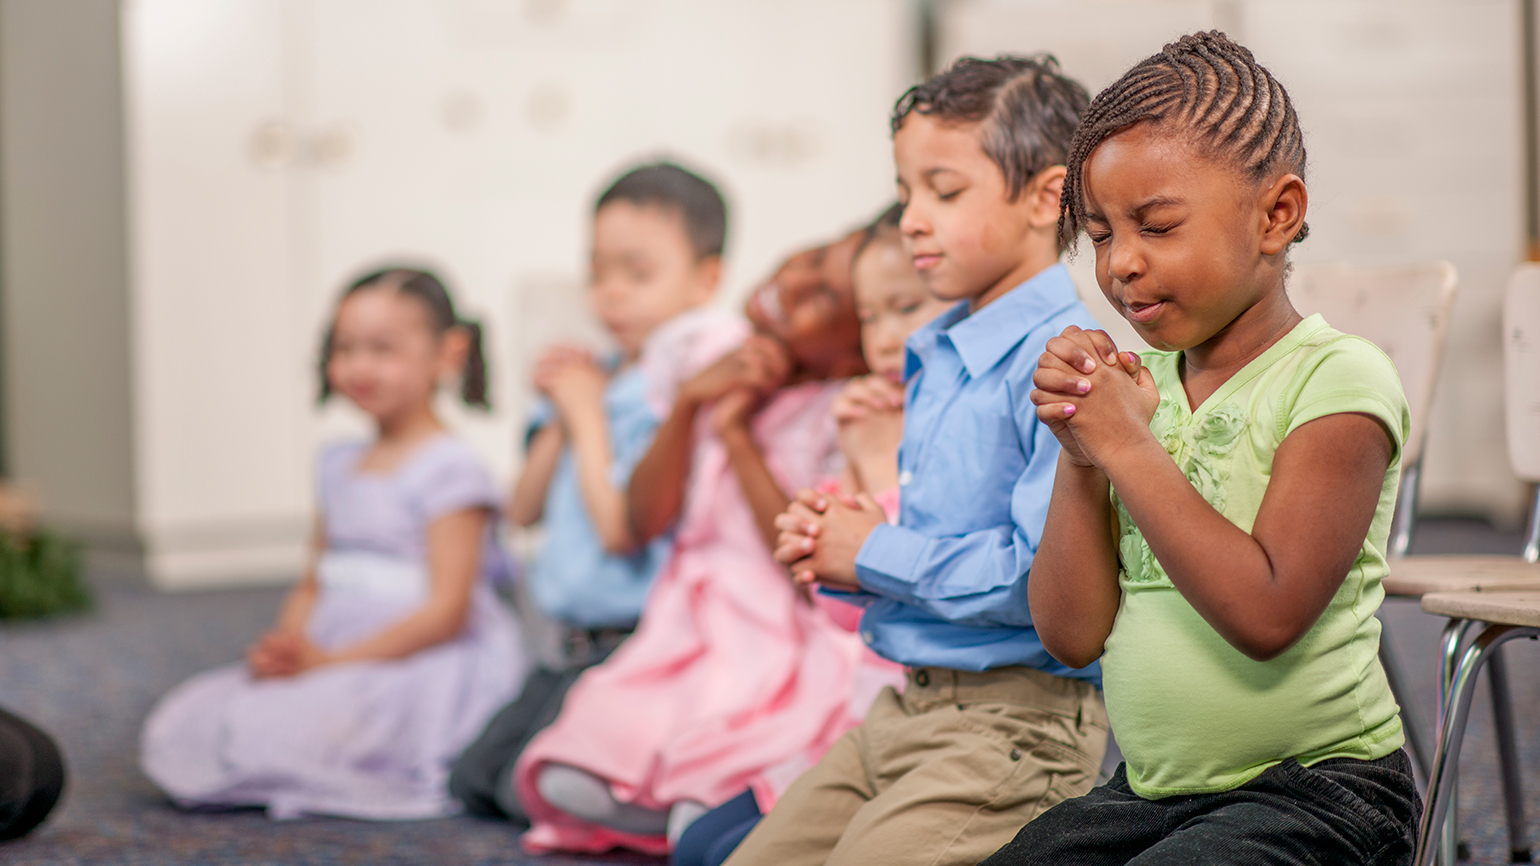 A group of young children kneel, hands clasped in prayer